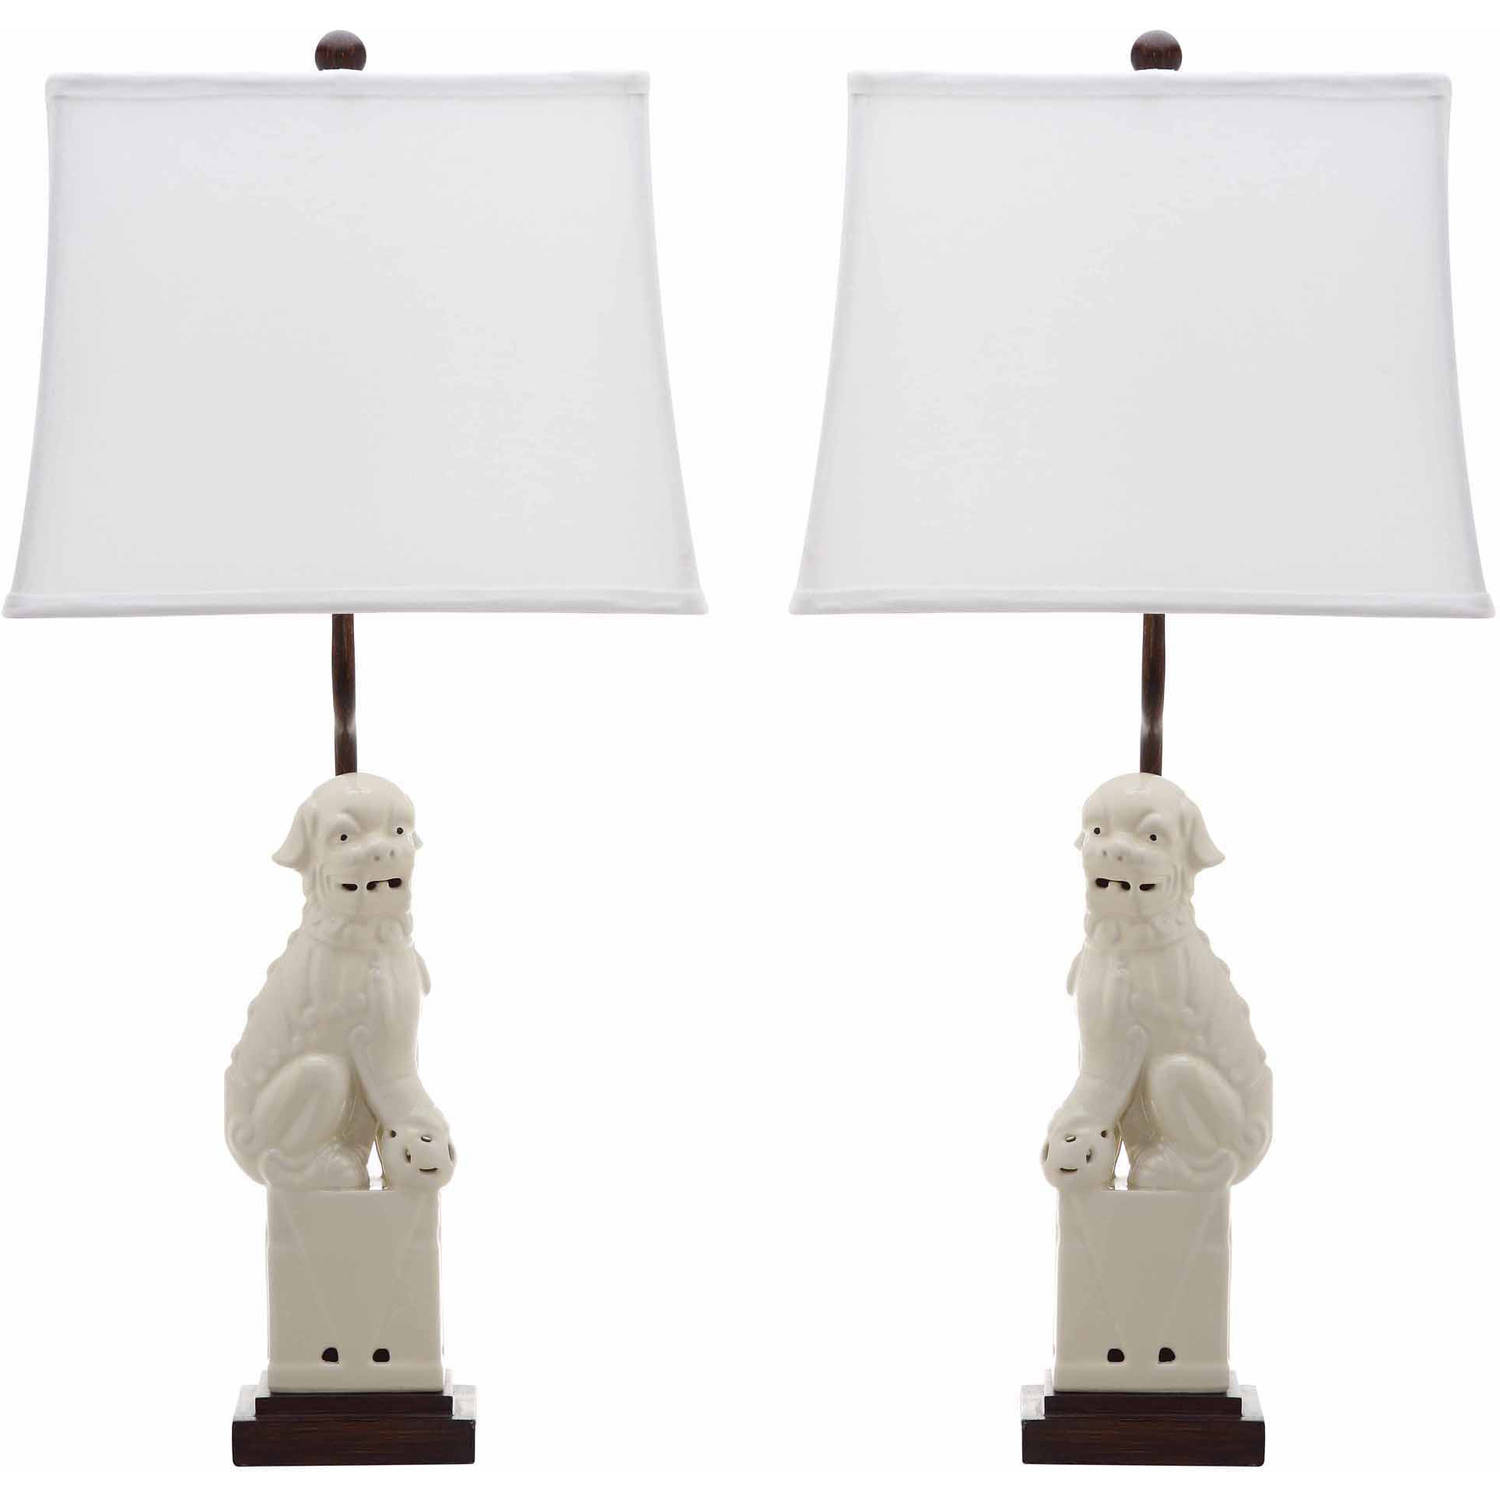 Safavieh Foo Dog Table Lamp With CFL Bulb, Multiple Colors, Set Of 2